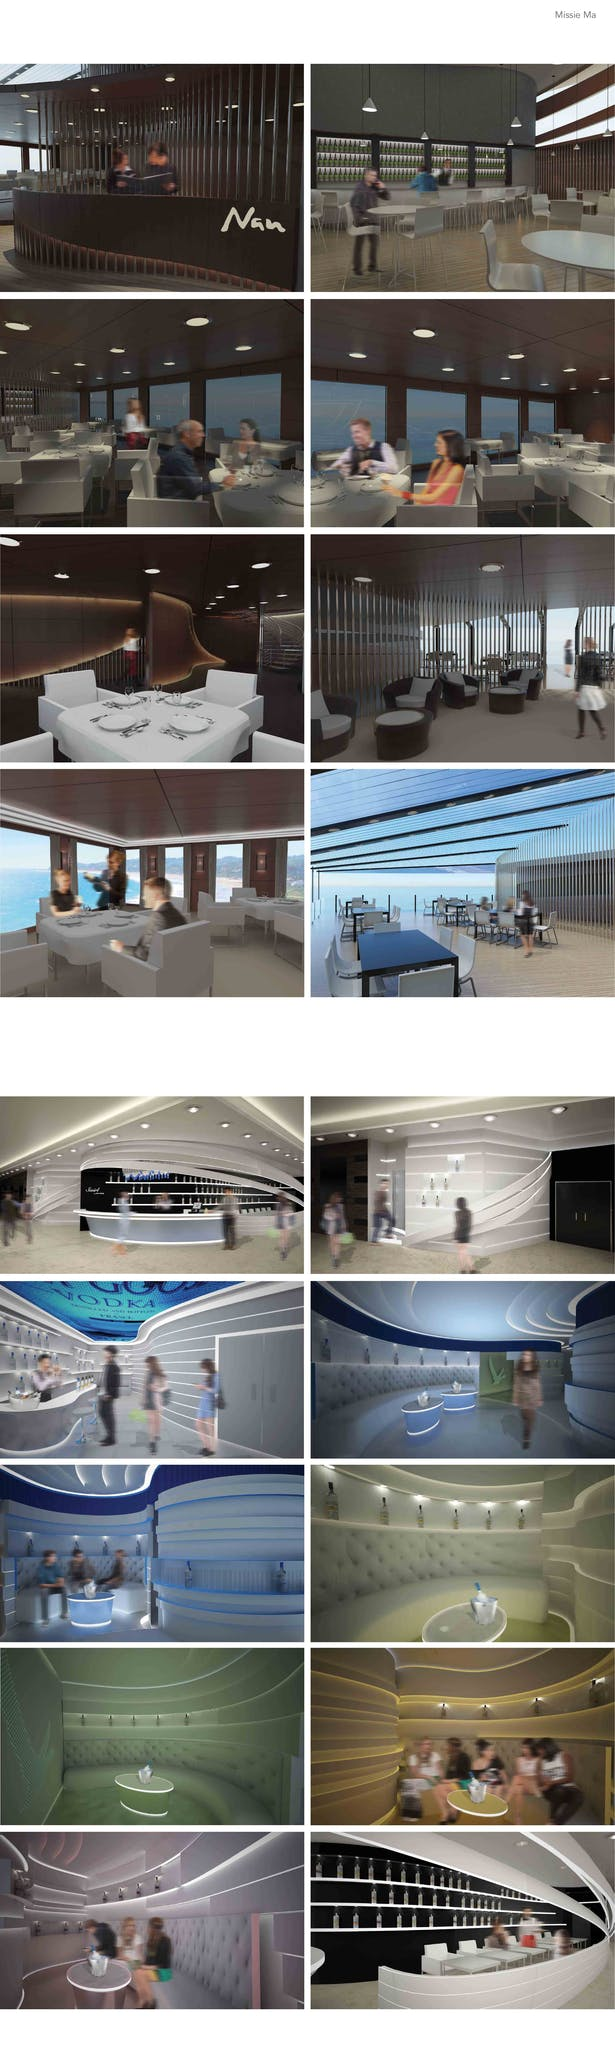 Restaurant Project + Lounge Project Renderings